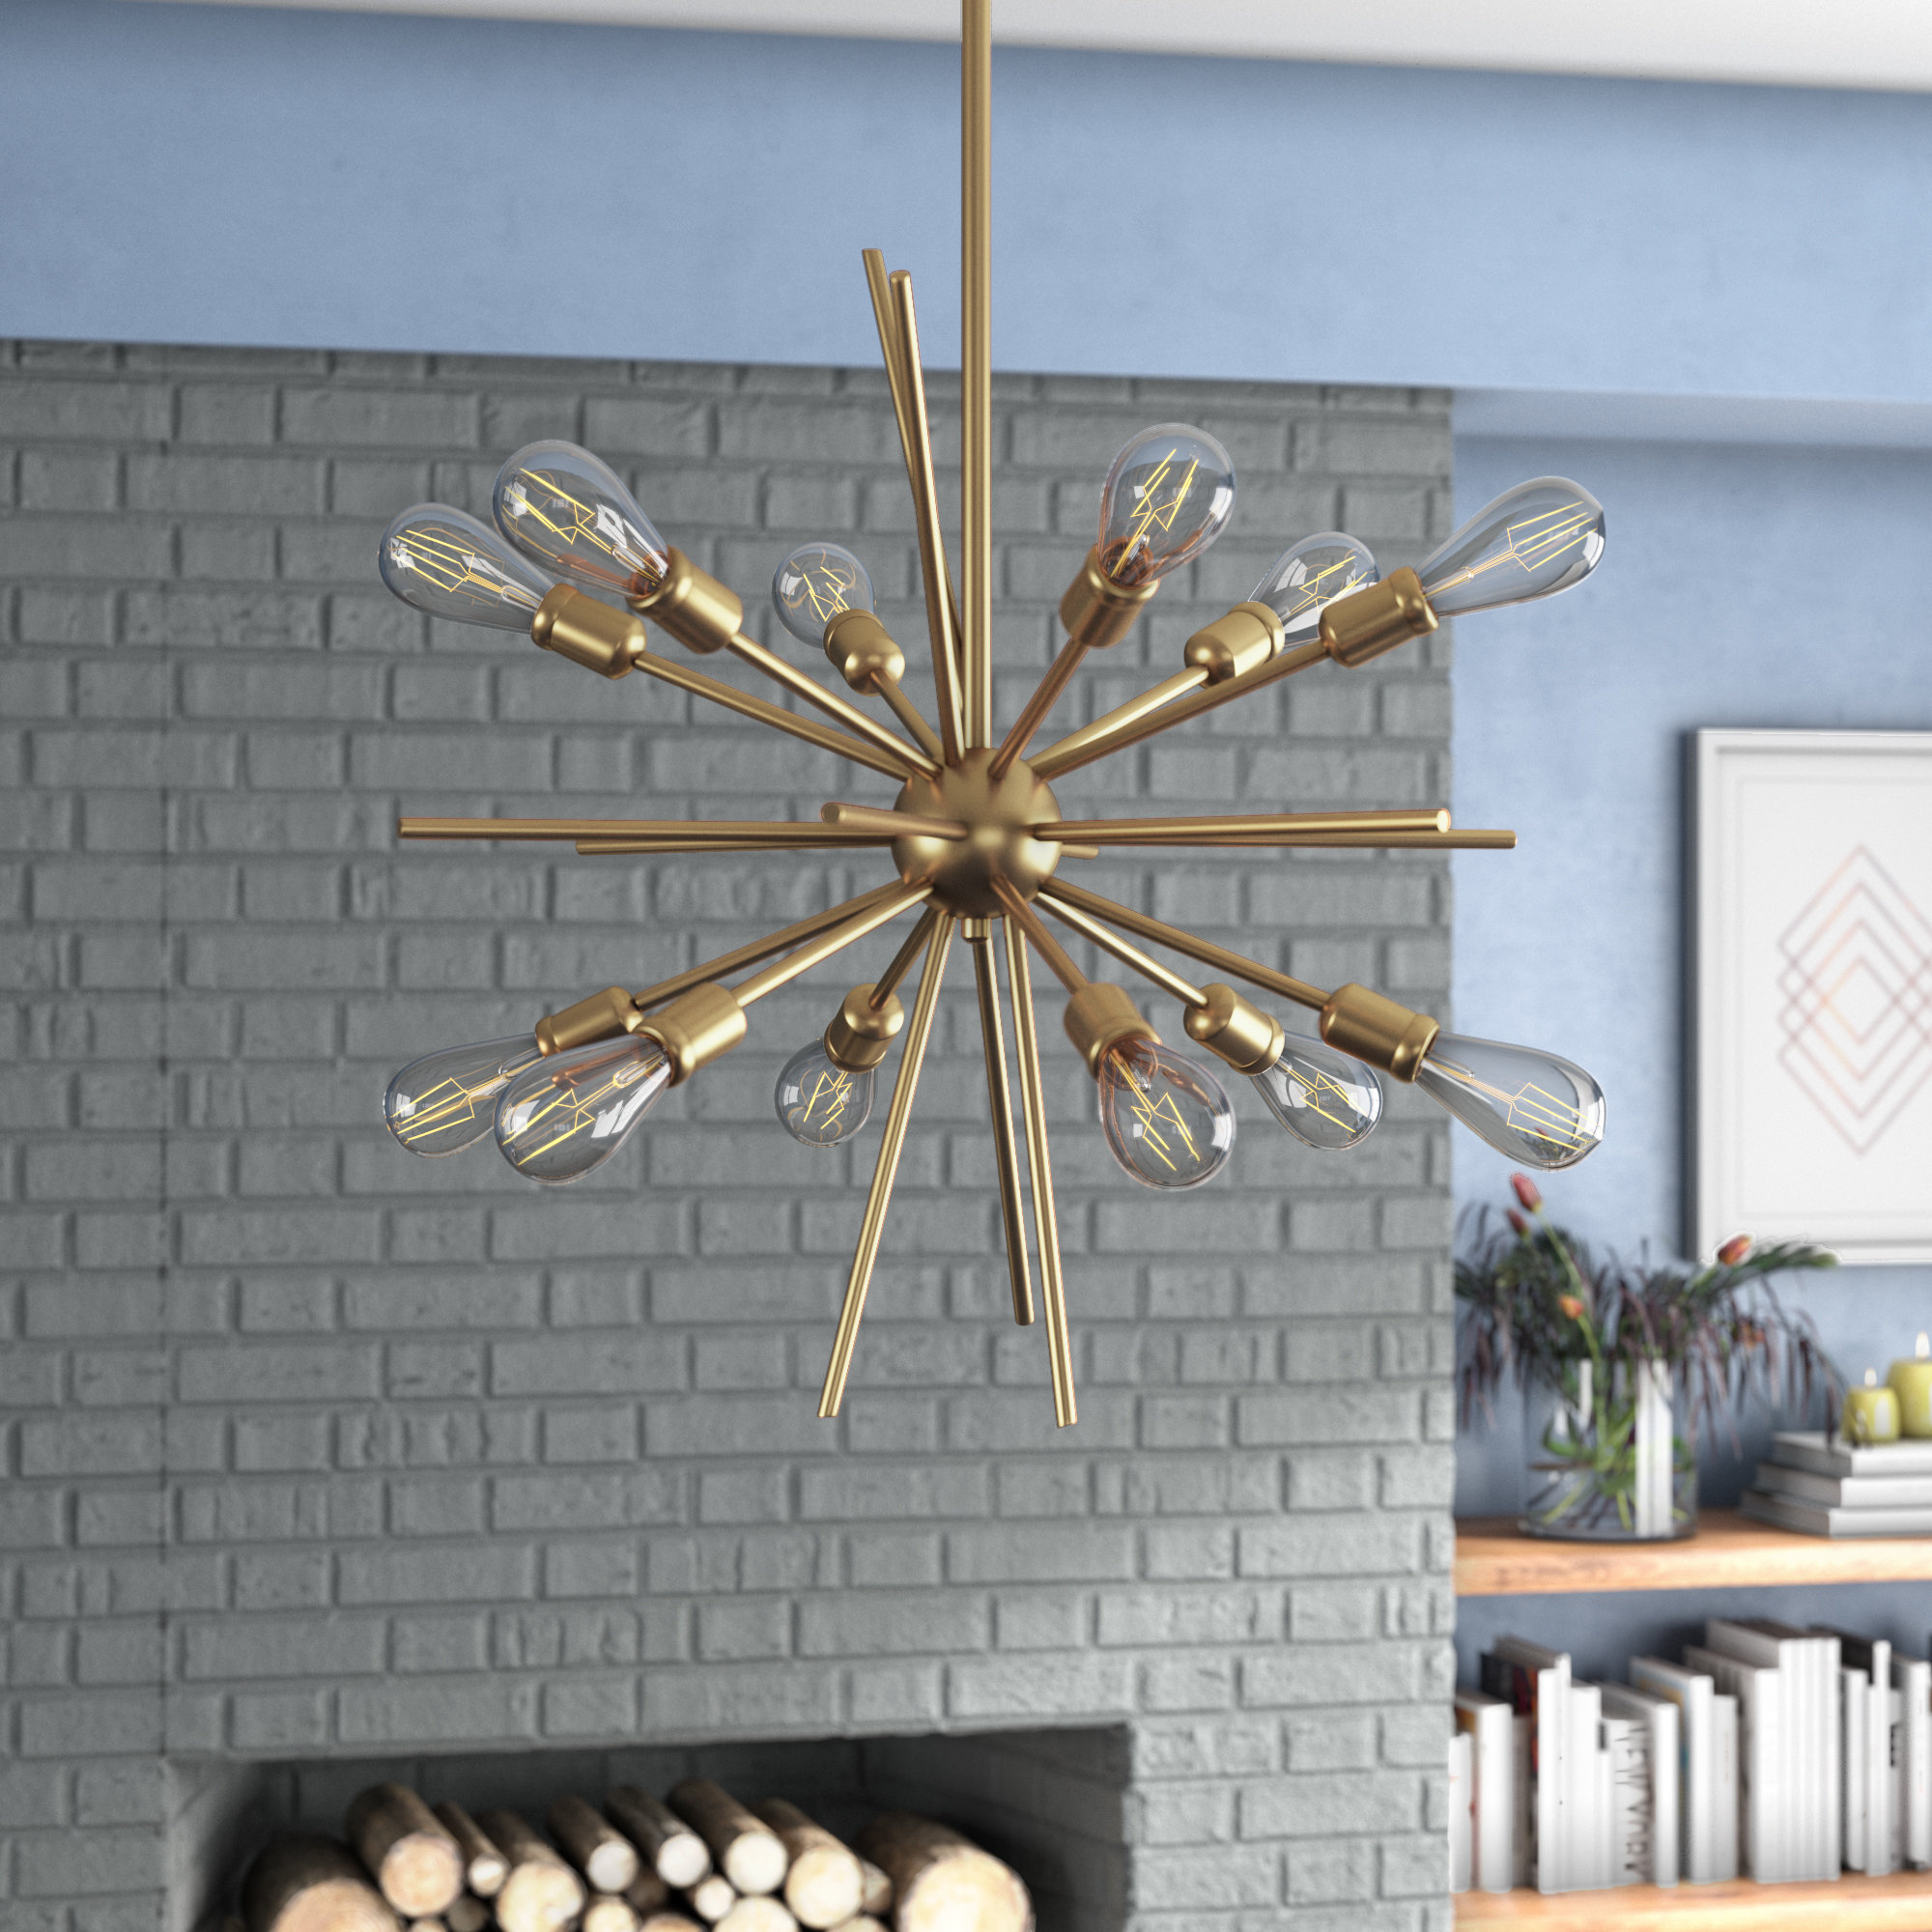 Corona 12-Light Sputnik Chandelier with Asher 12-Light Sputnik Chandeliers (Image 10 of 30)